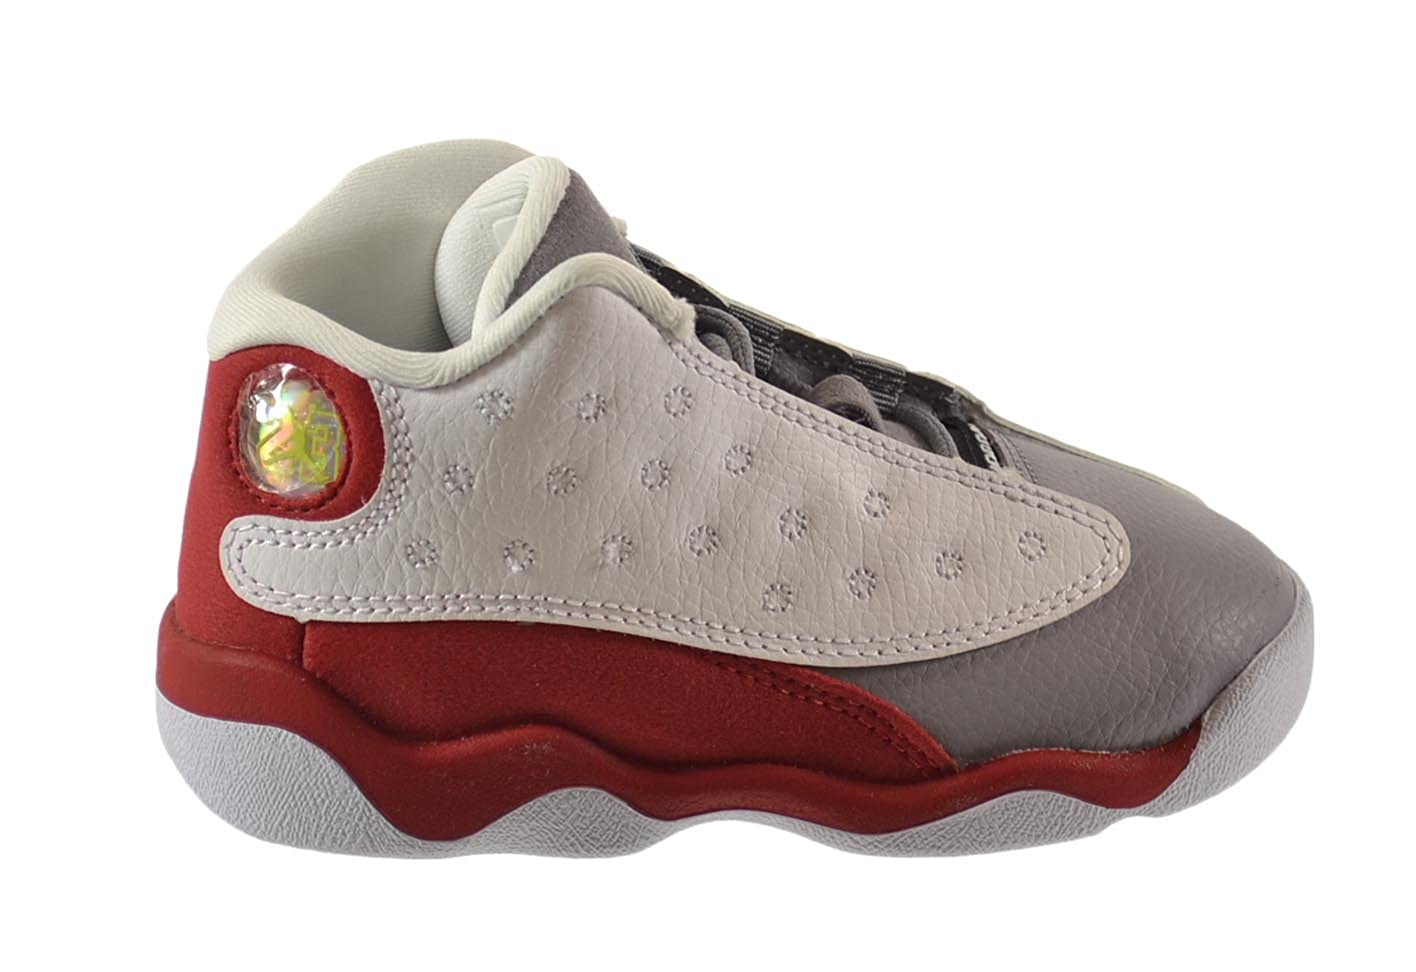 new style e6762 9bd0e Amazon.com | Jordan 13 Retro Grey Toe BT Baby Toddler Shoes ...